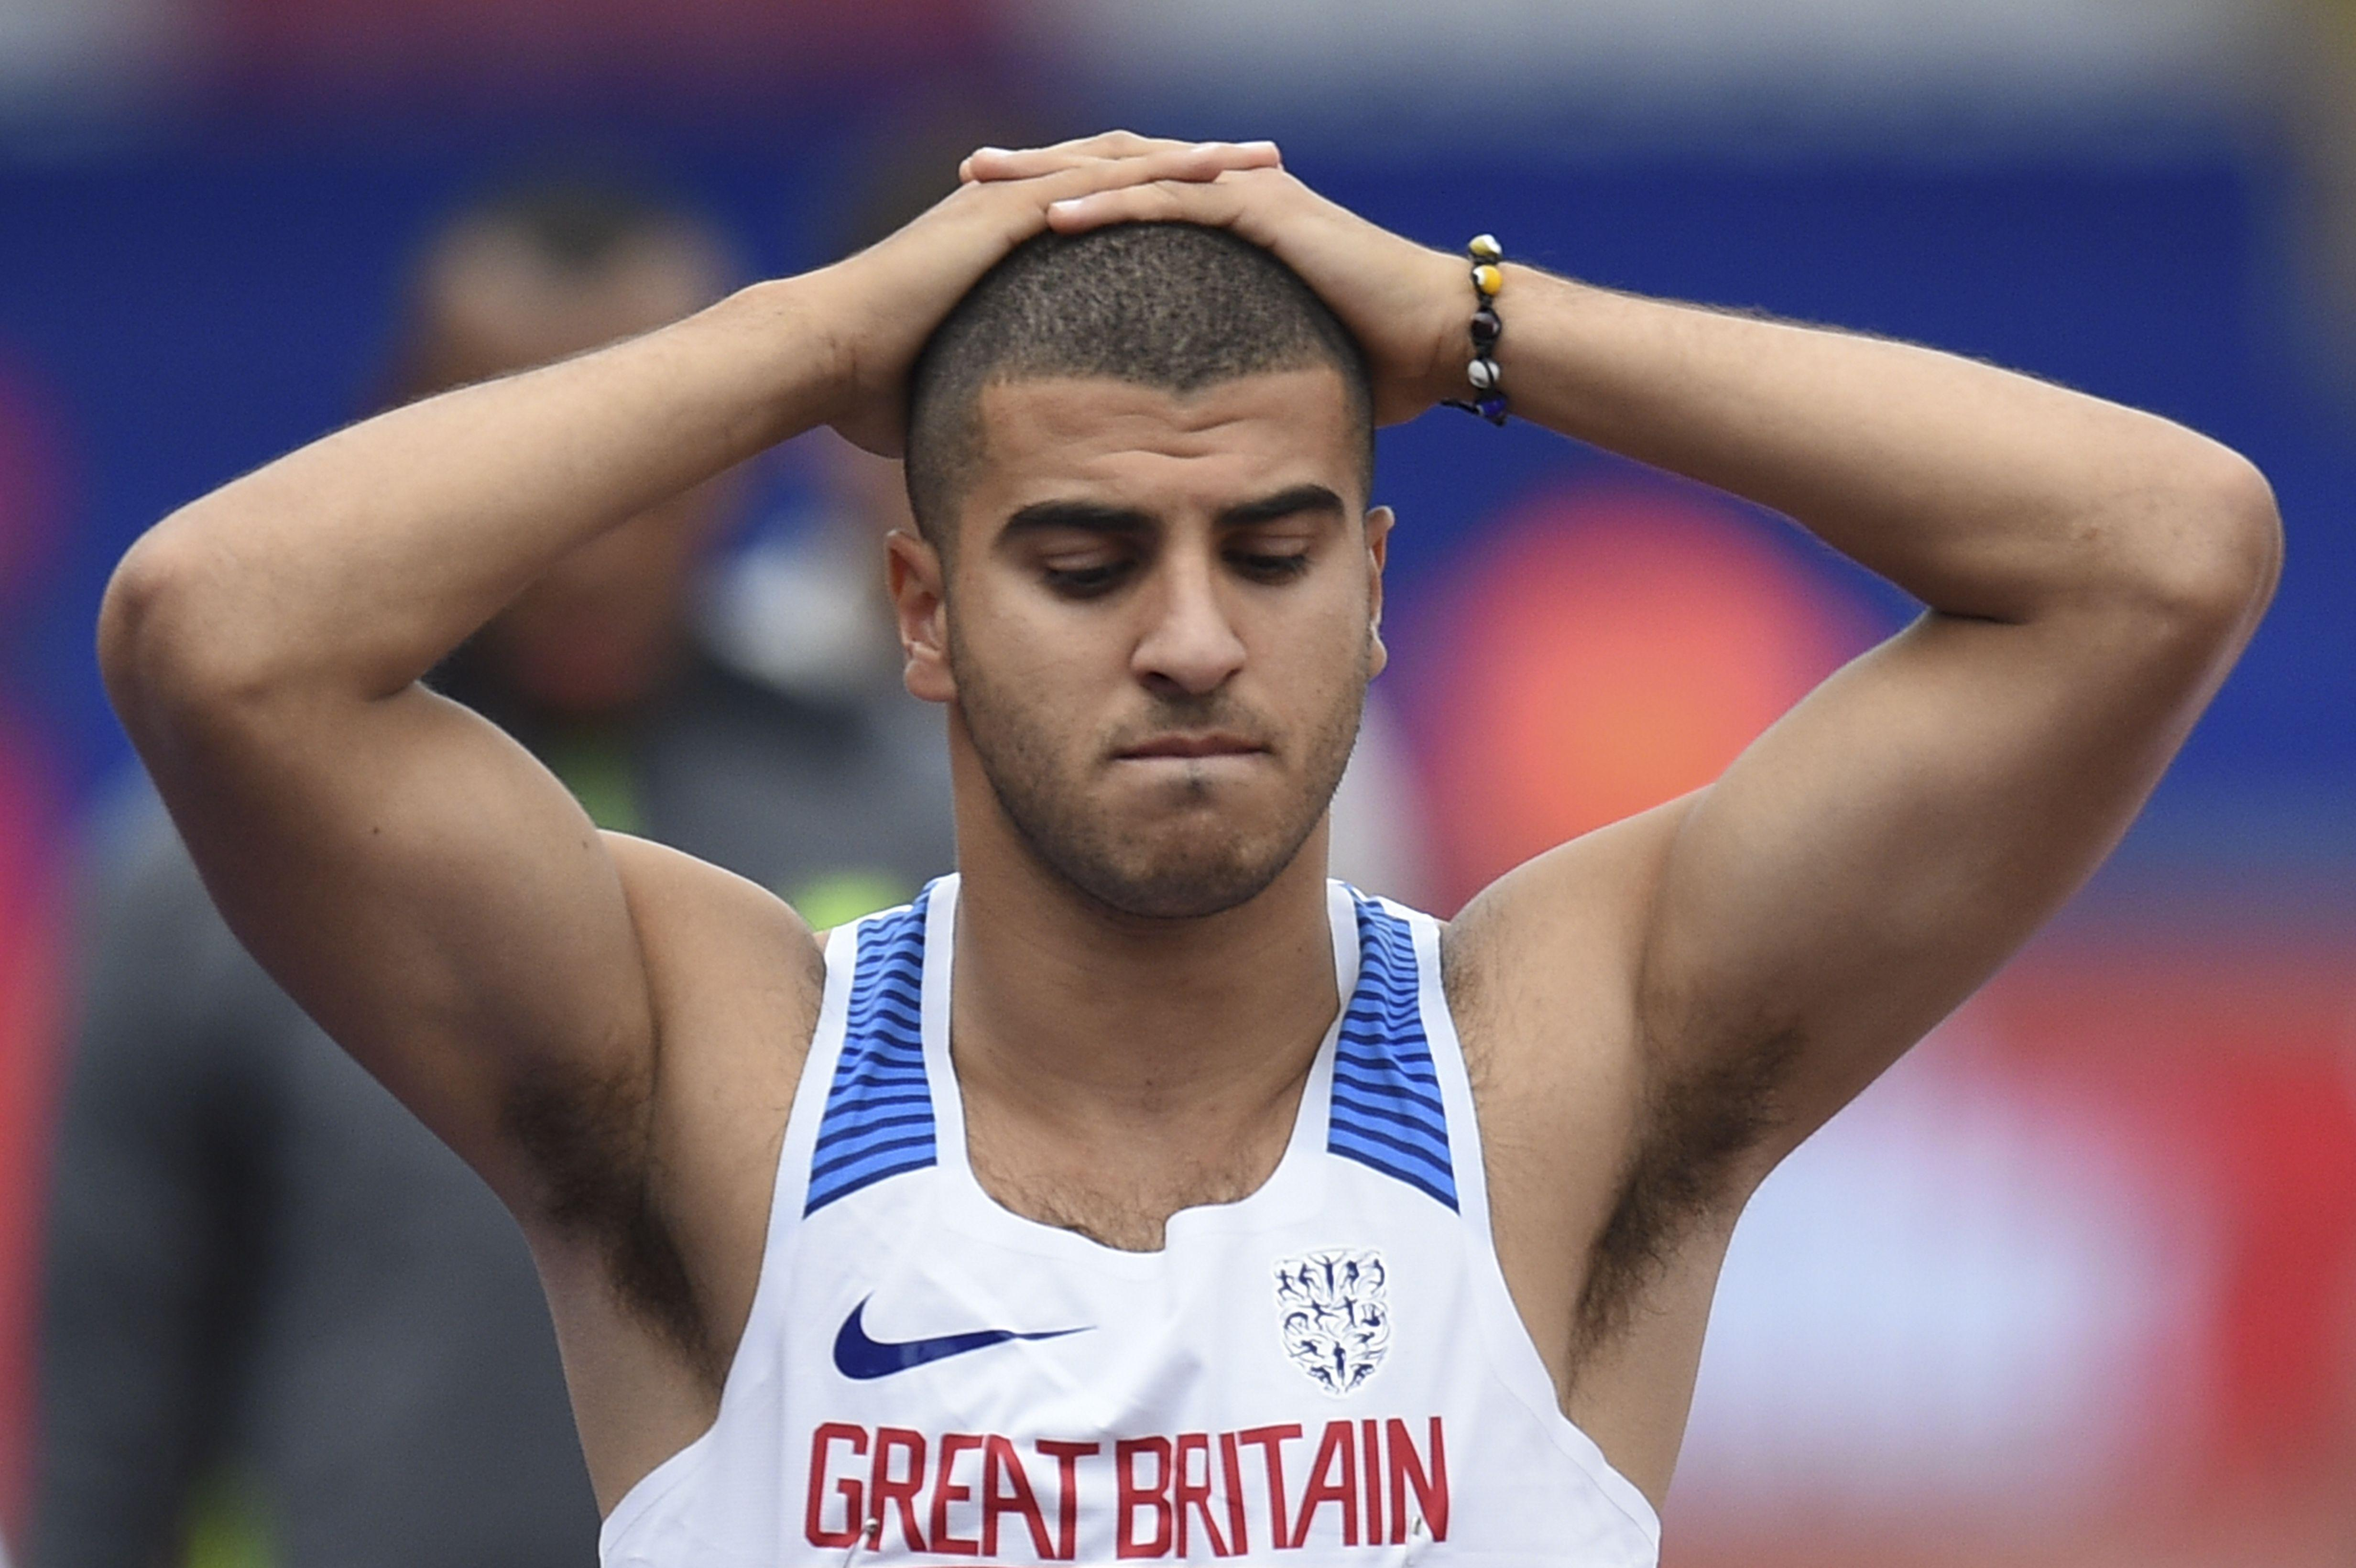 Gemili has been unlucky in the Olympic Games